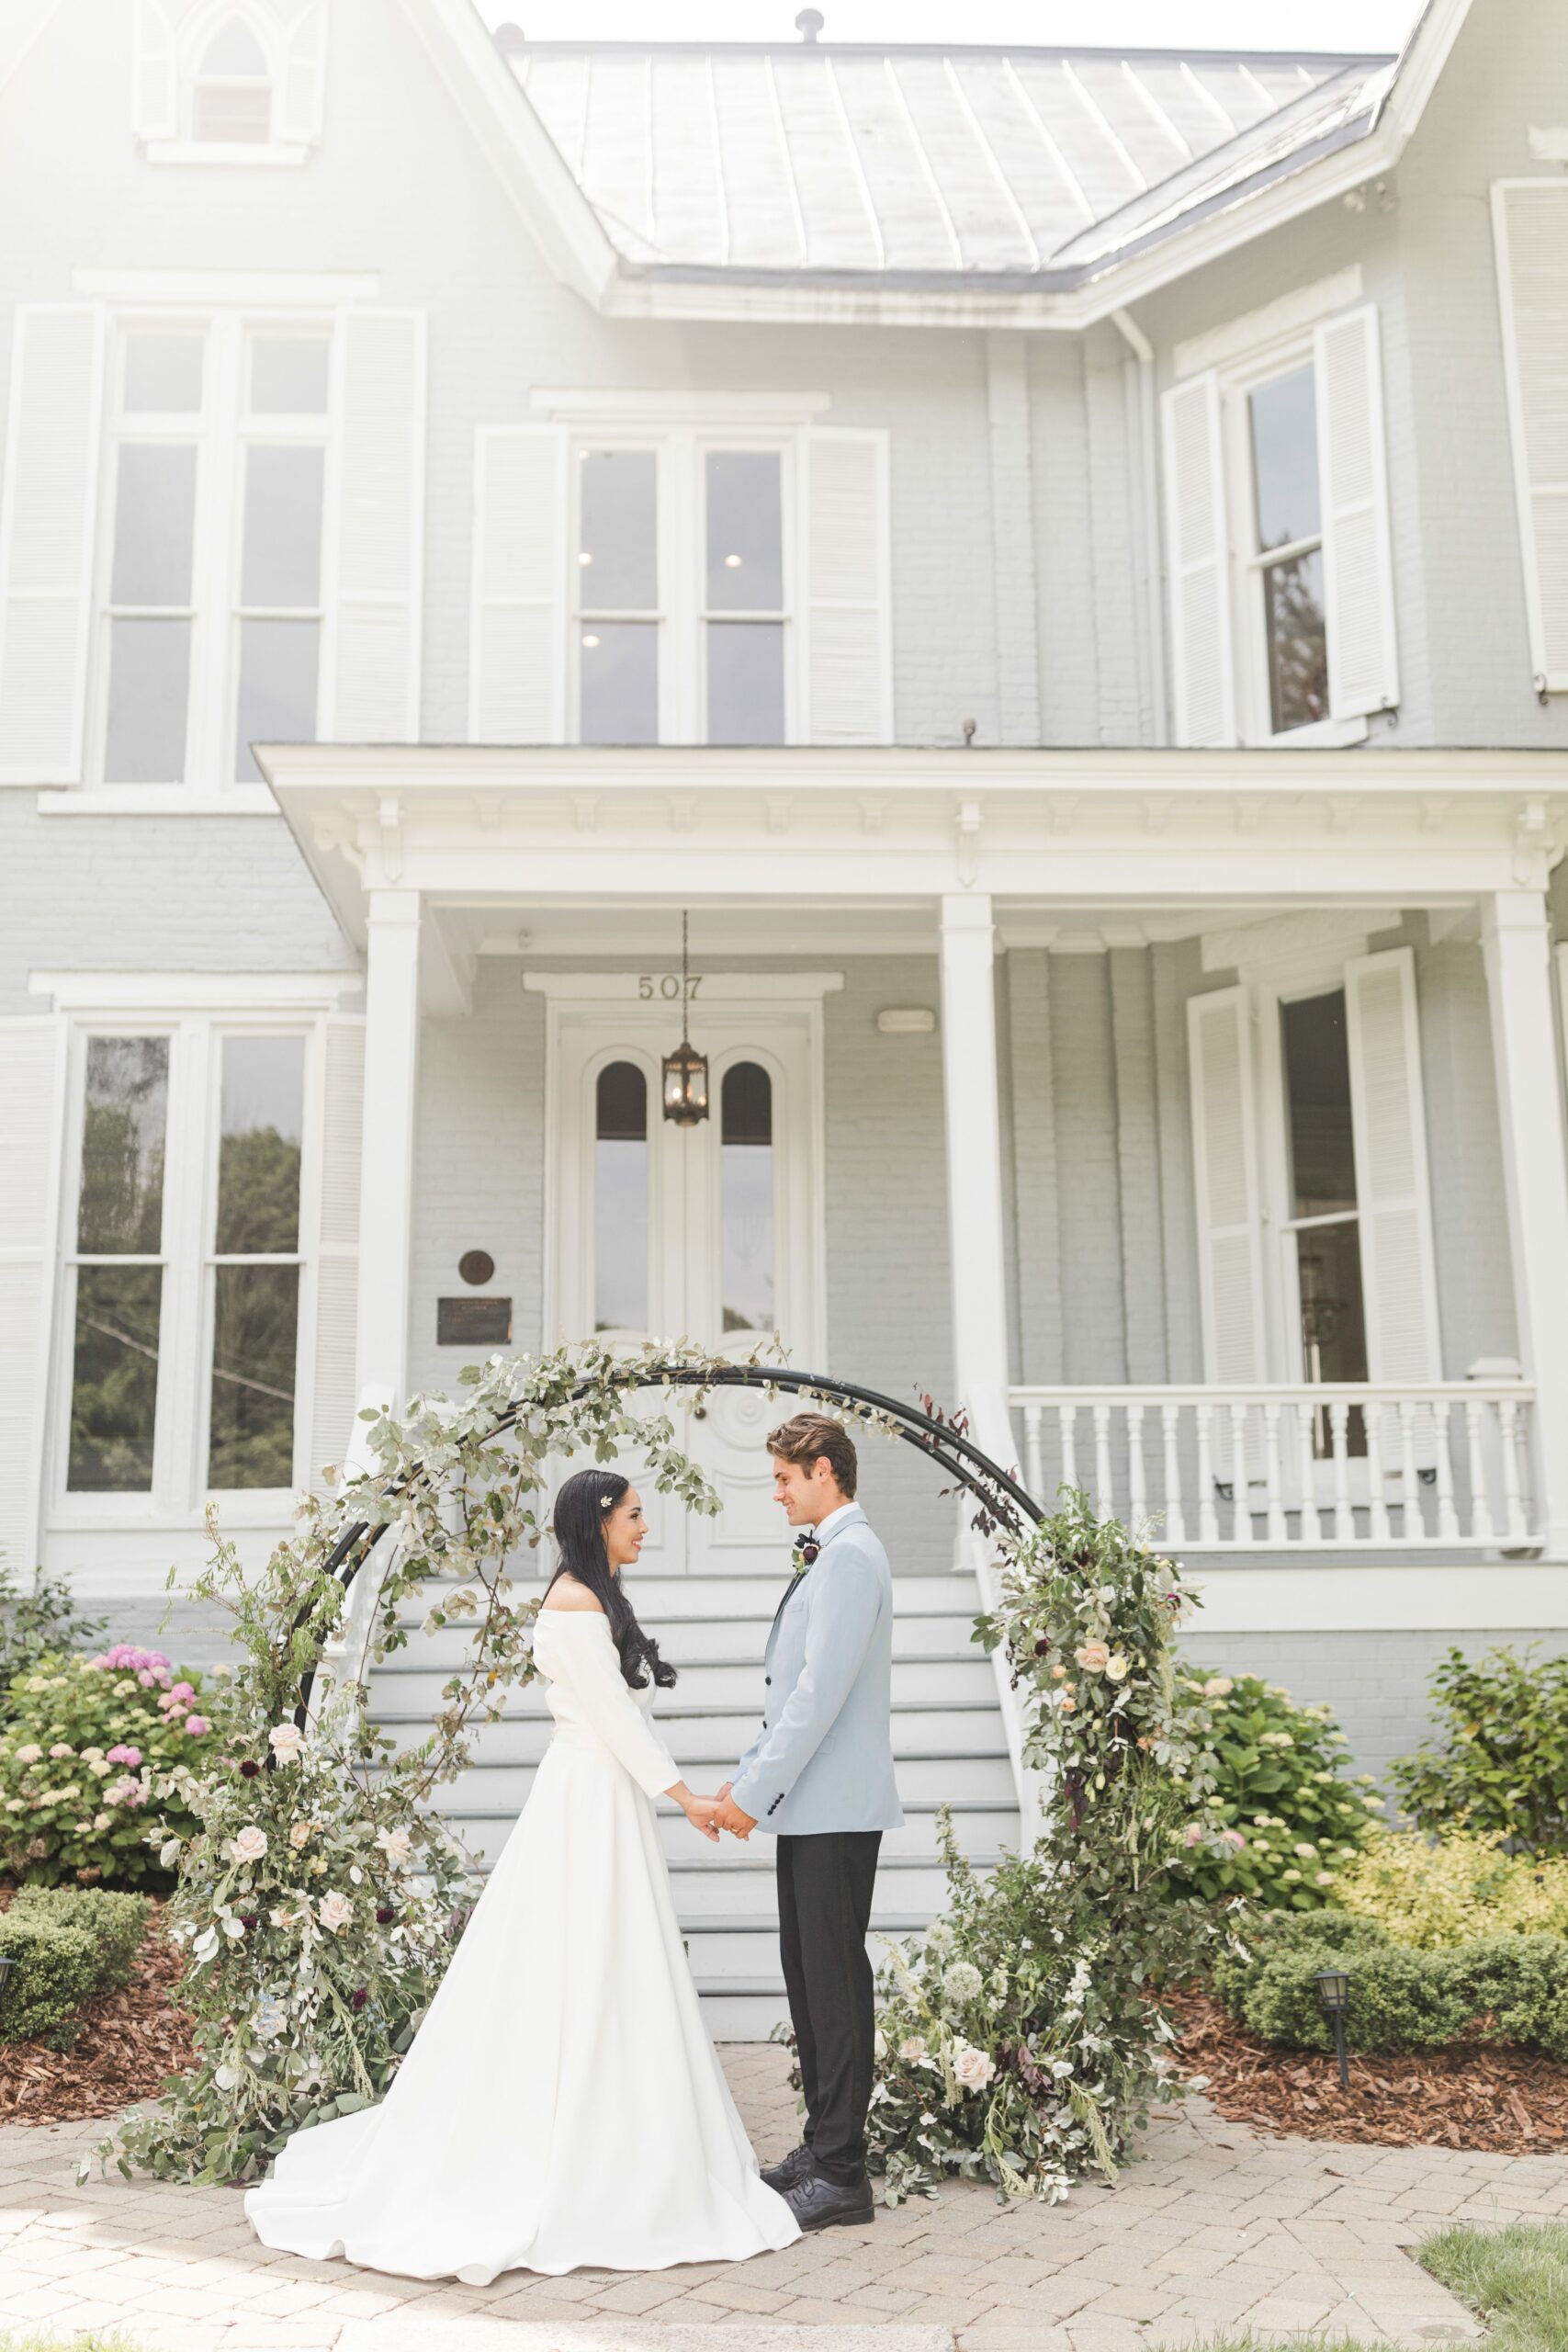 Romantic-Outdoor-Spring-Wedding-McAlister-Leftwich-House-26